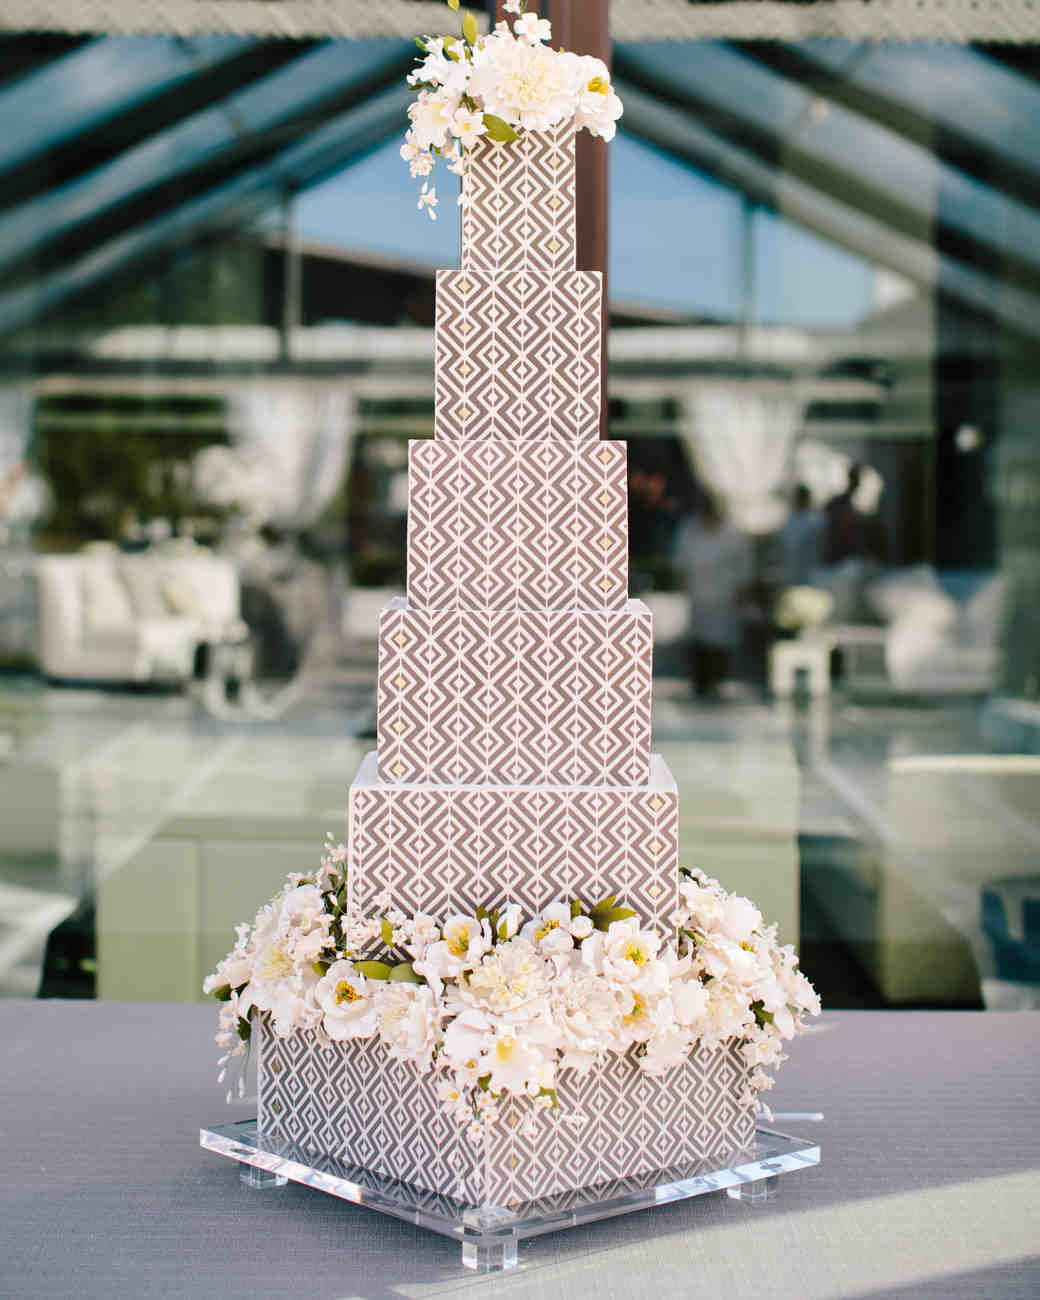 20 Unique Wedding Cake Shapes Contemporary Couples Should